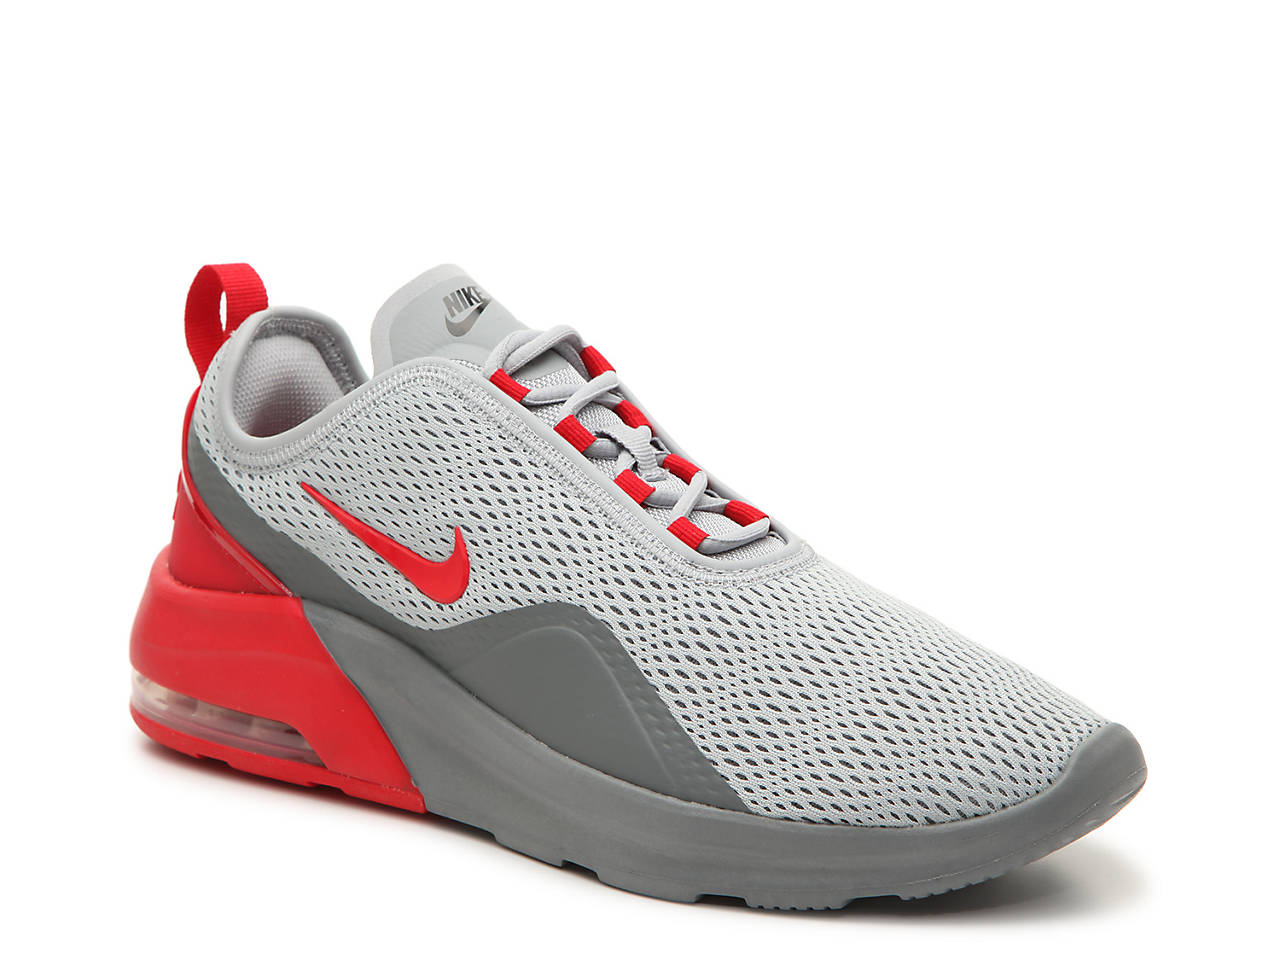 new arrival 41a29 d58bd Air Max Motion 2 Sneaker - Men s